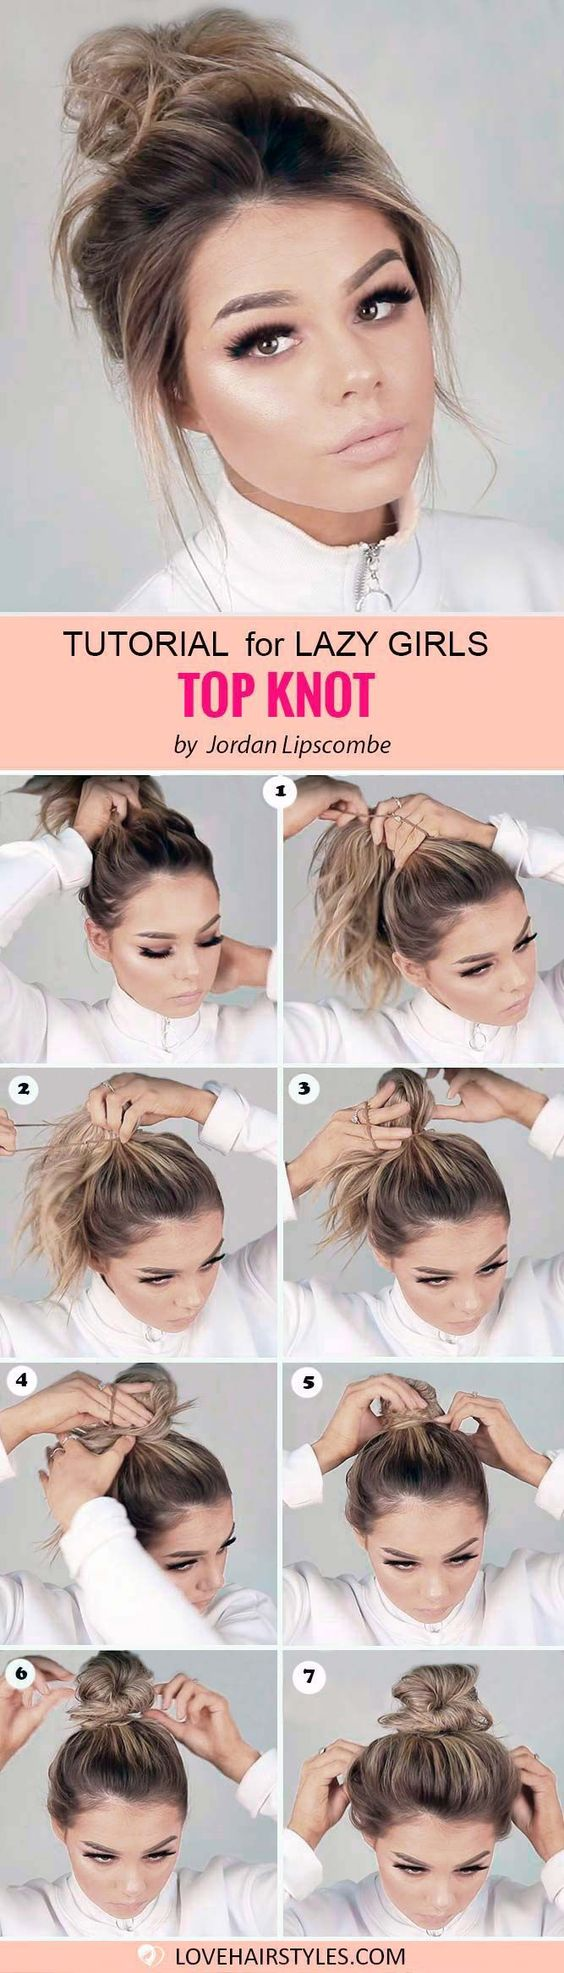 8 Quick Easy Hairstyles For The Next Day You Feel Lazy - Society19 UK